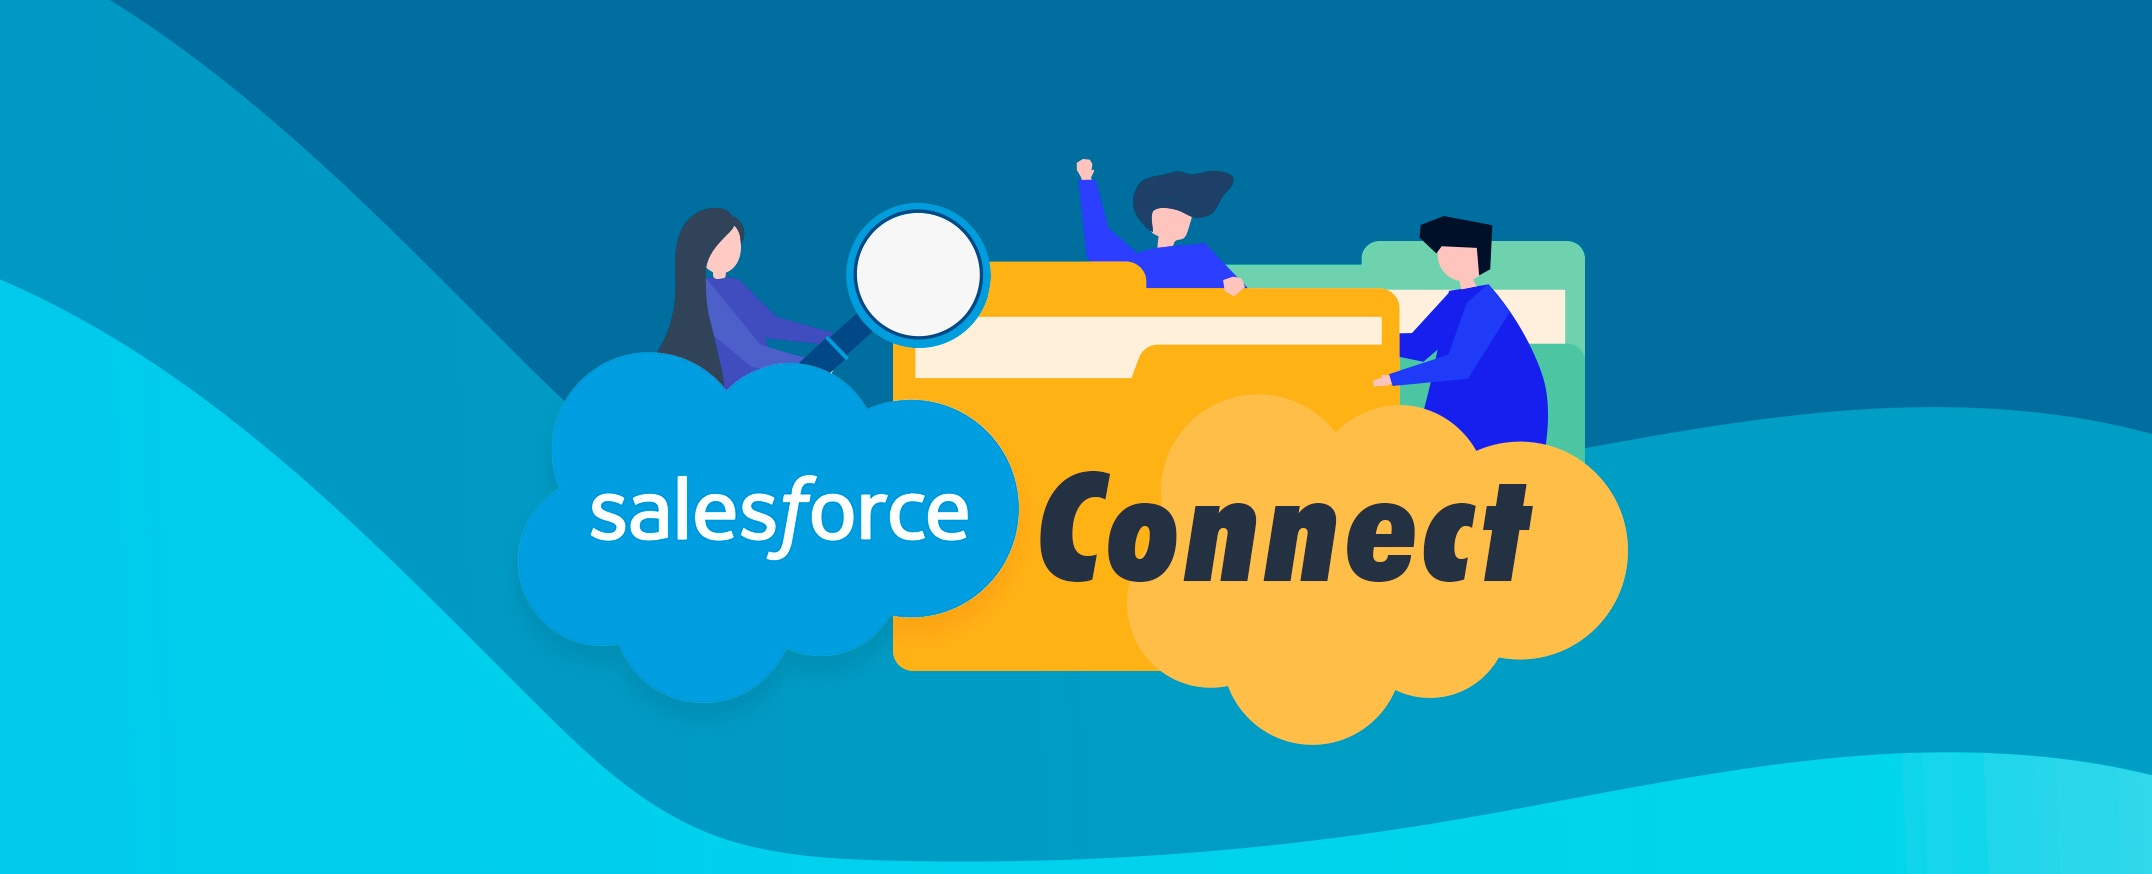 Salesforce-Connect